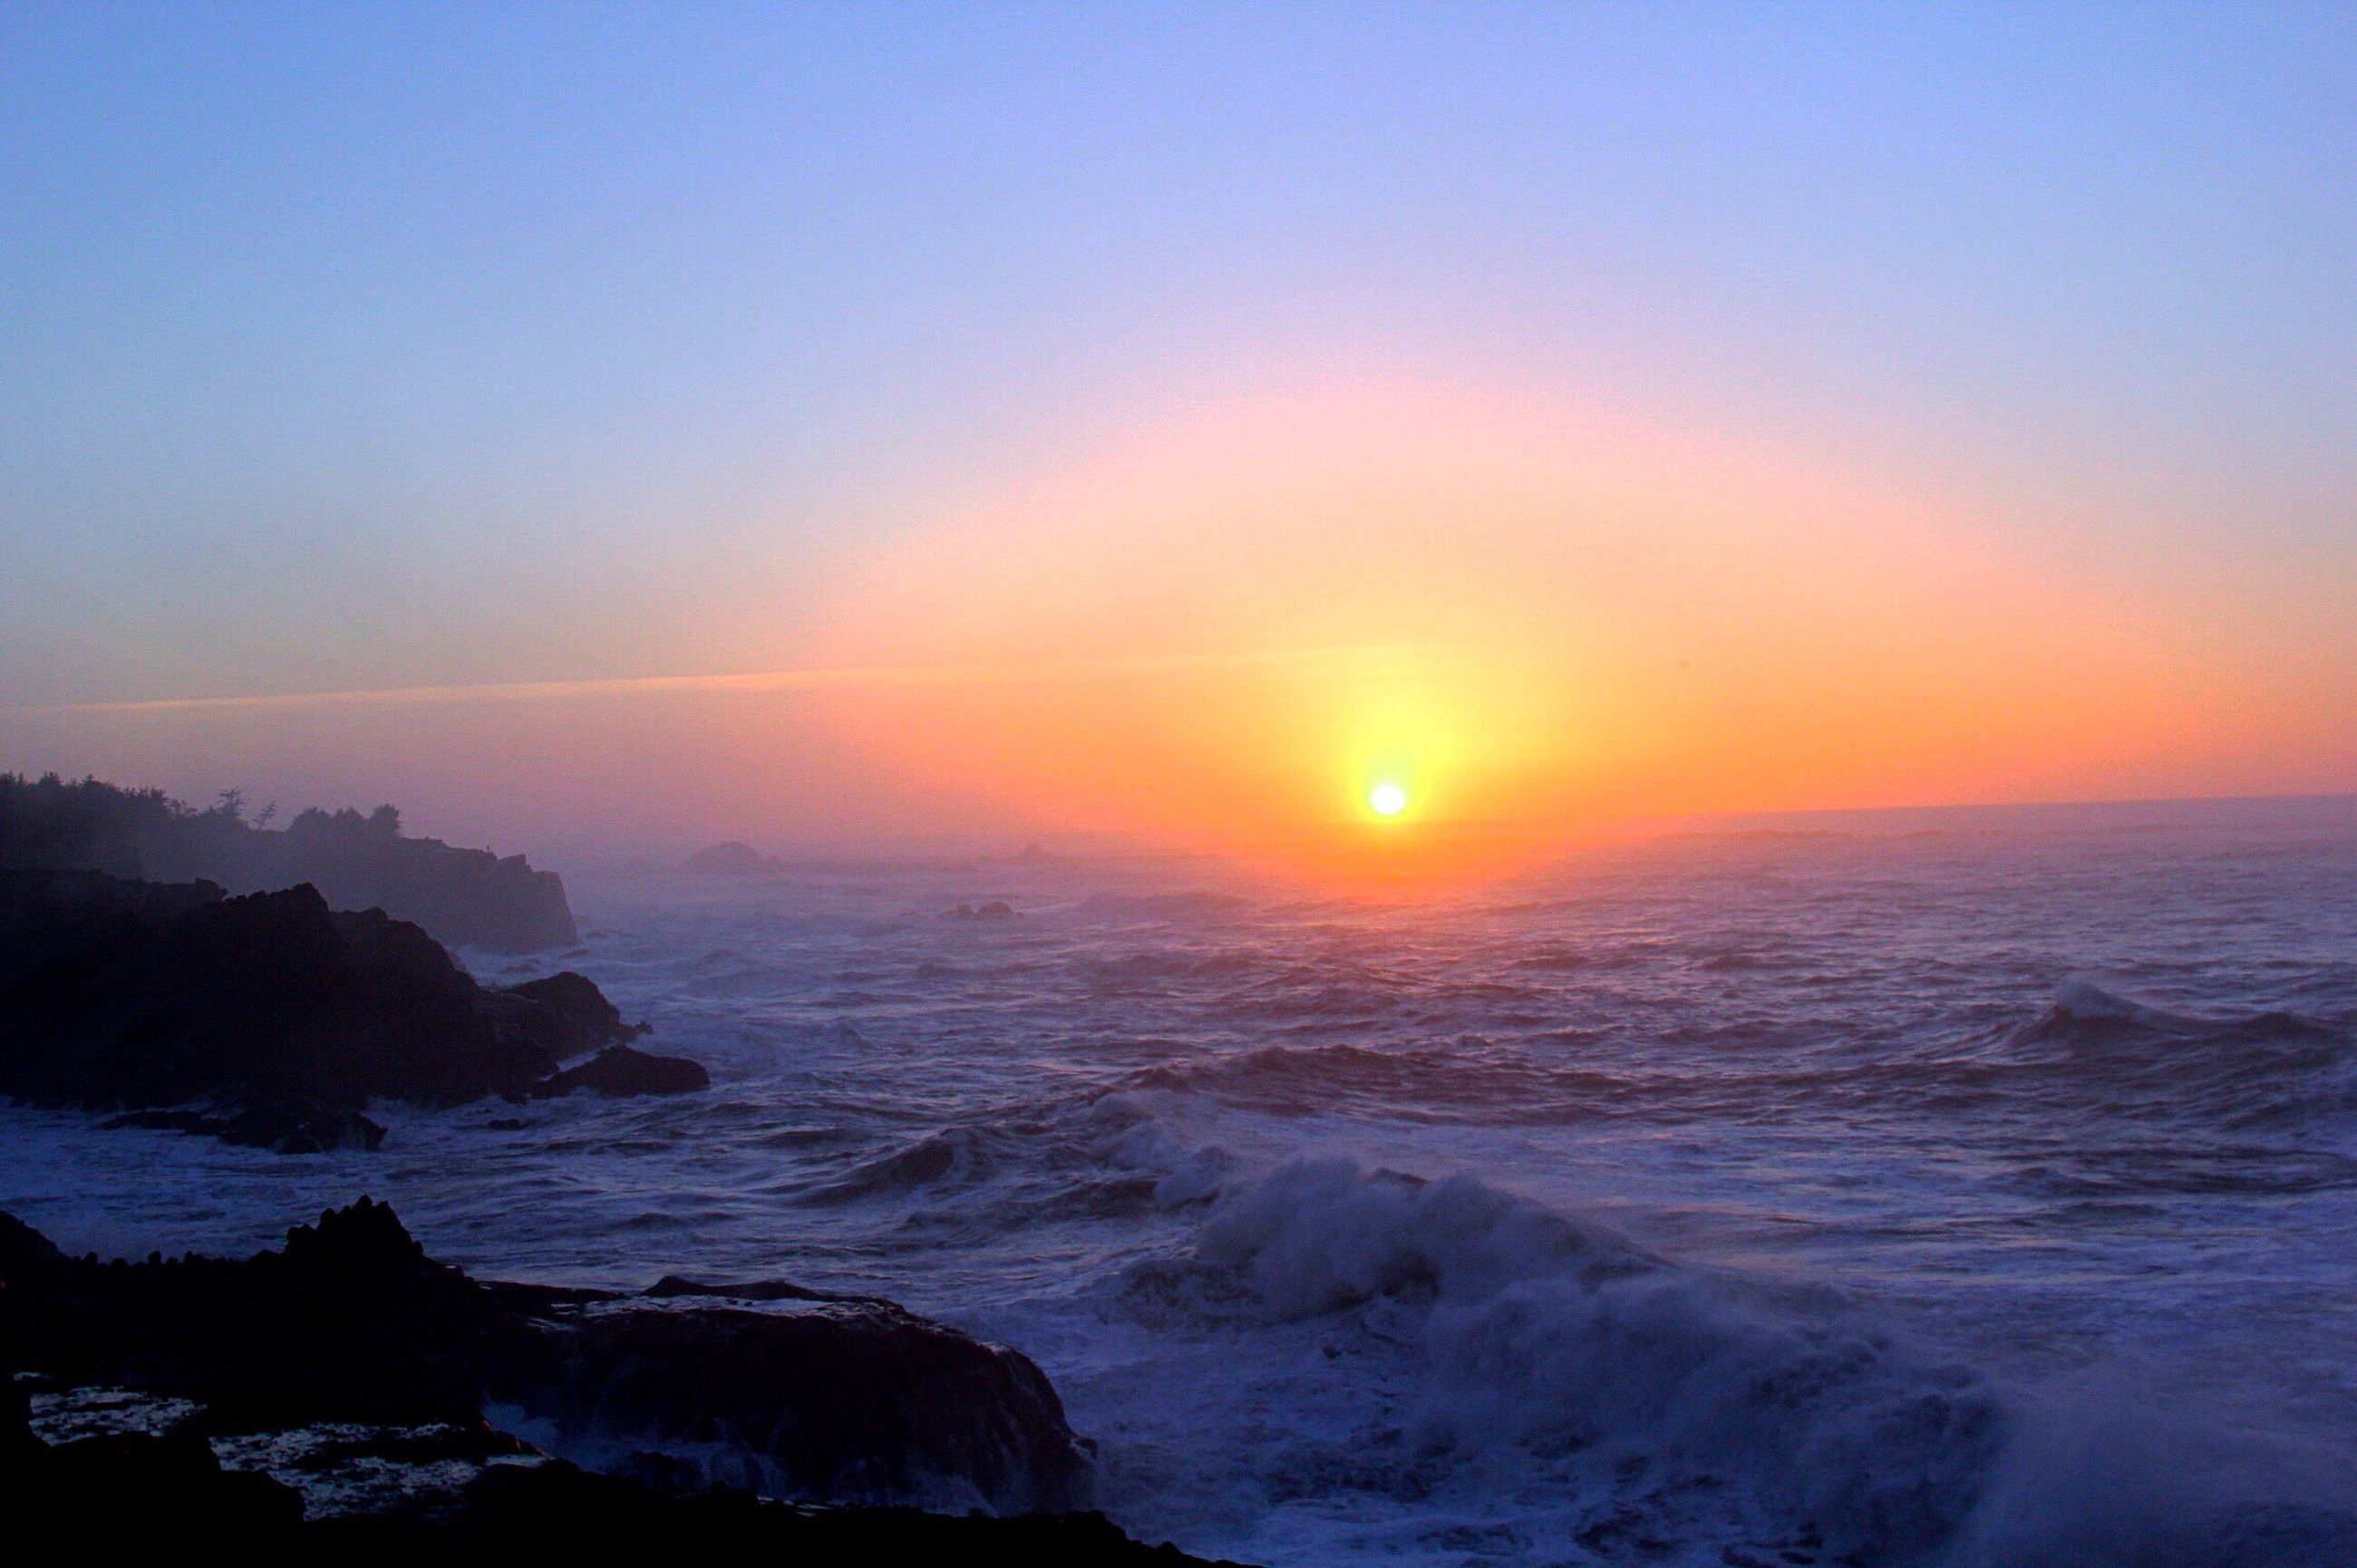 sunset, sea, tranquil scene, beauty in nature, scenics, no people, horizon over water, dramatic sky, nature, rock - object, sky, beach, tranquility, sun, refraction, outdoors, water, landscape, cold temperature, wave, galaxy, astronomy, day